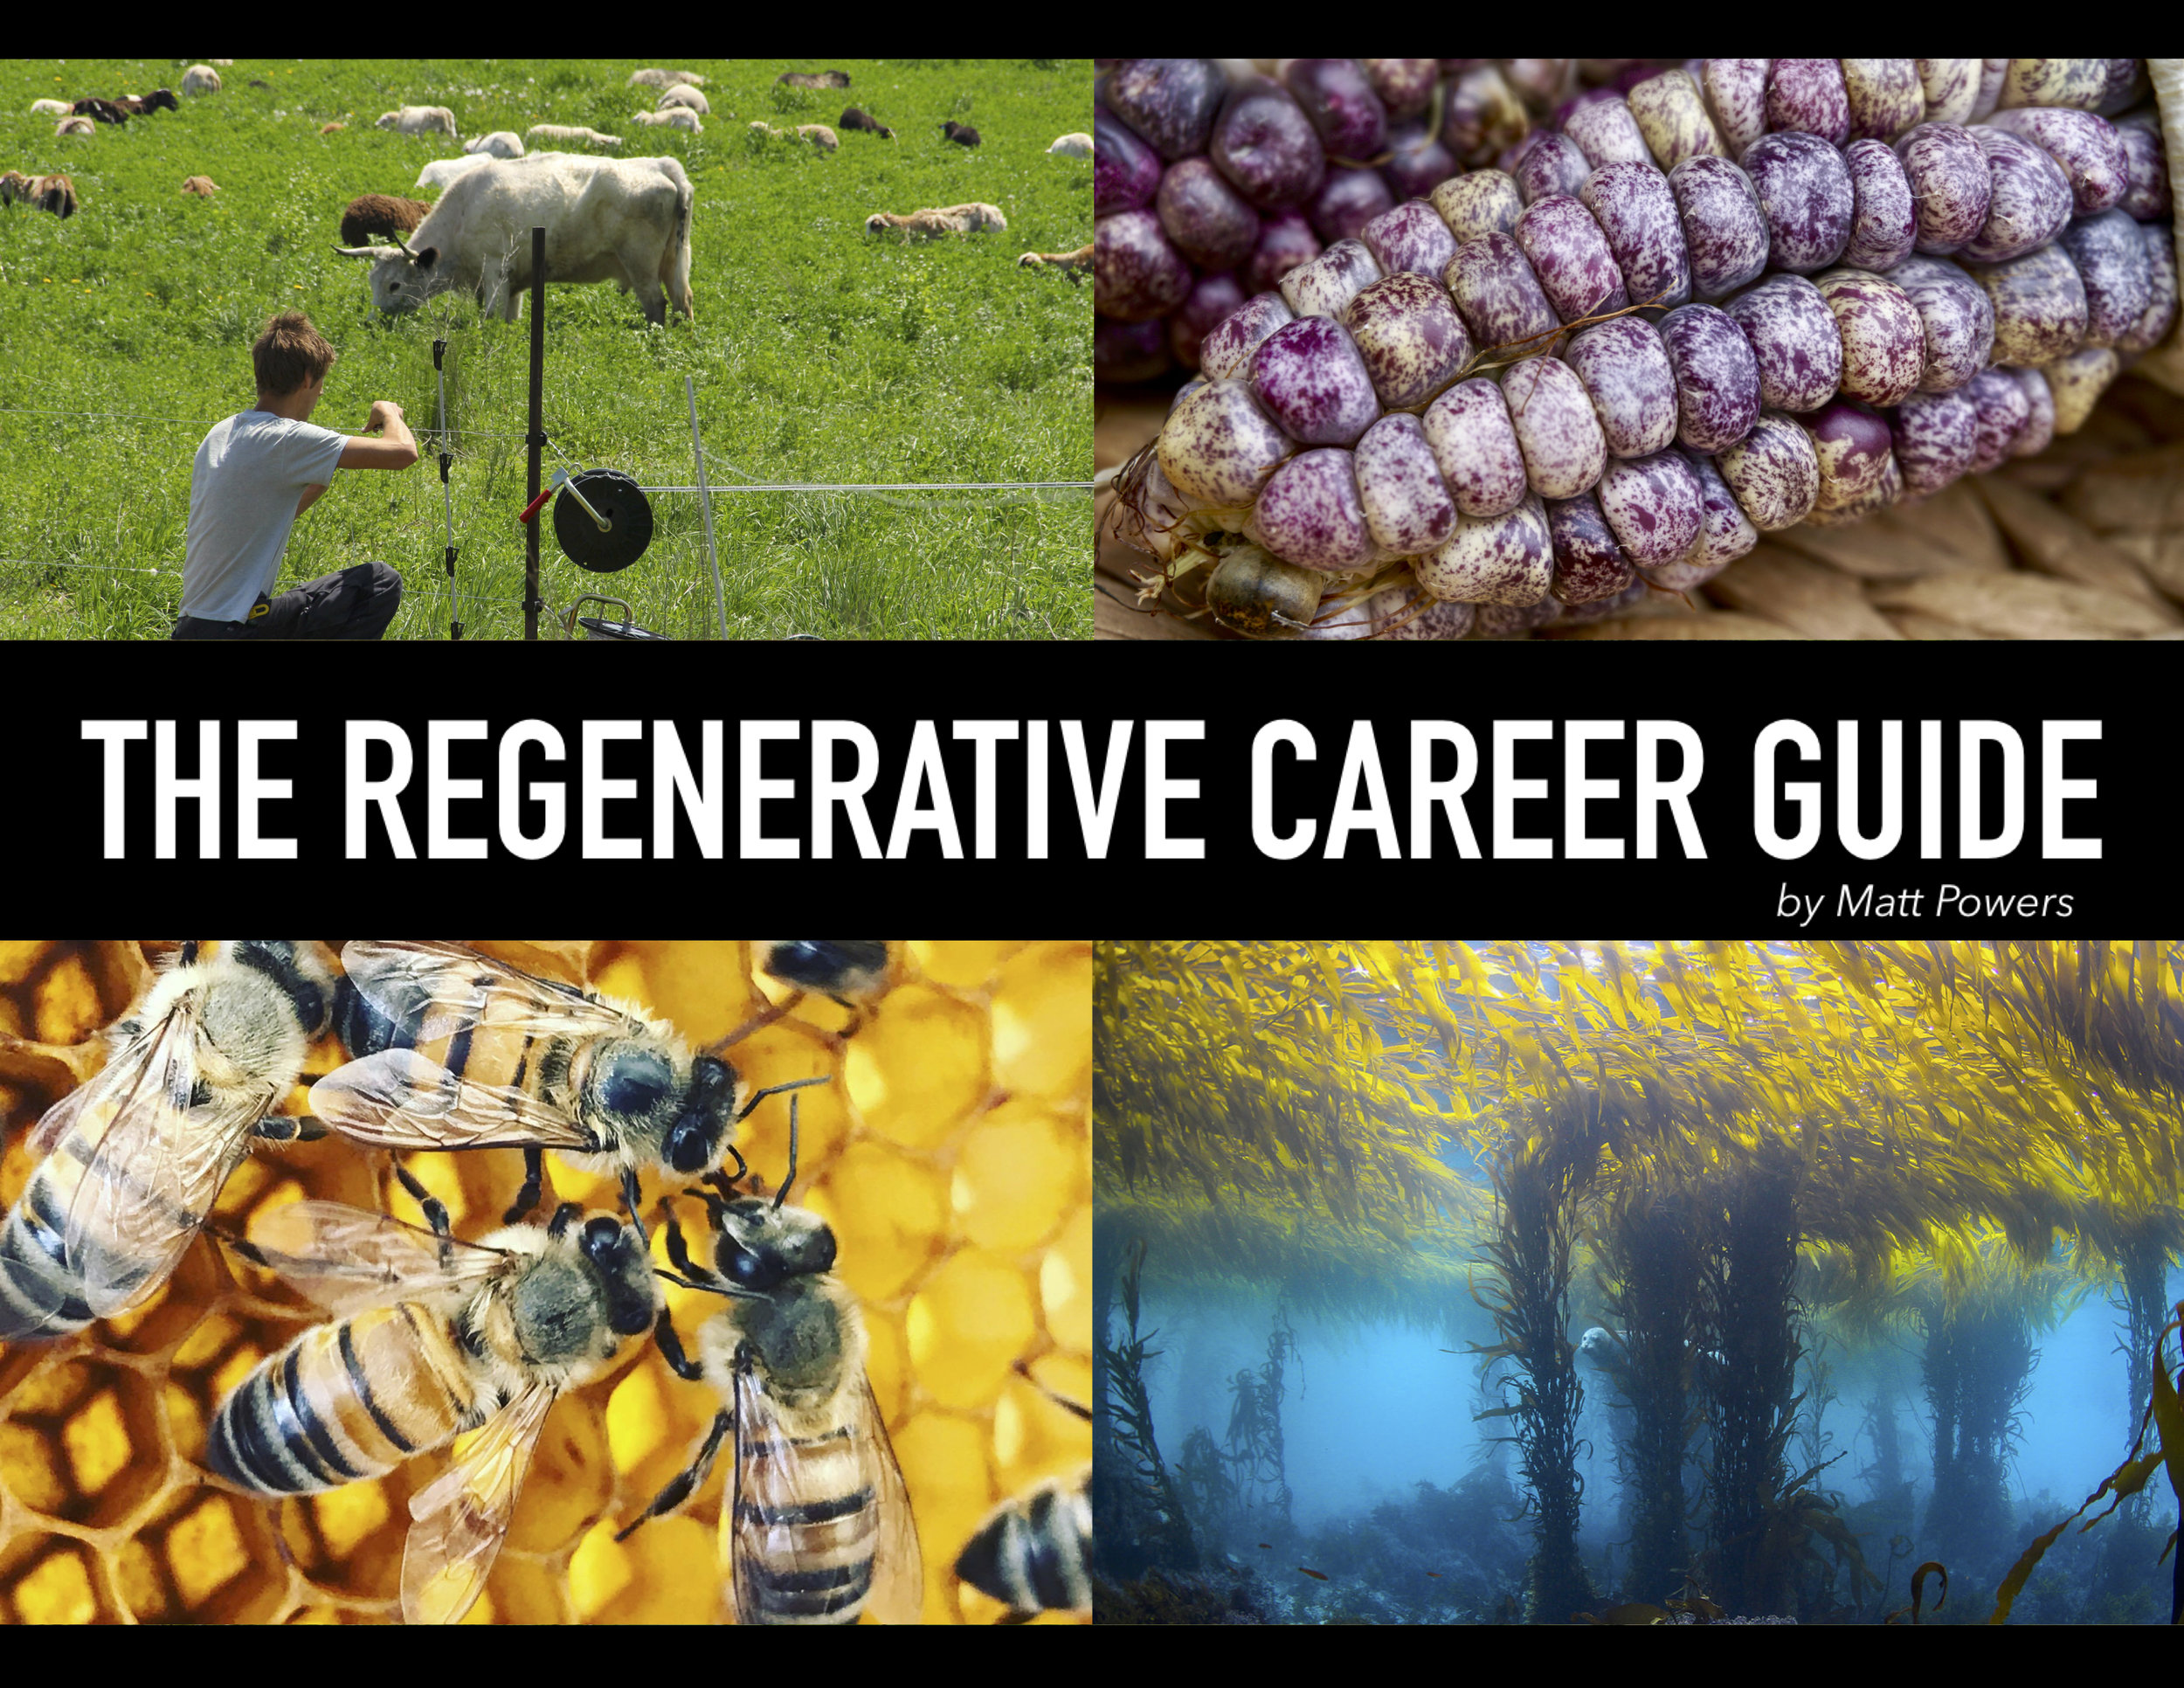 Click the image to download your eBook copy of The Regenerative Career Guide